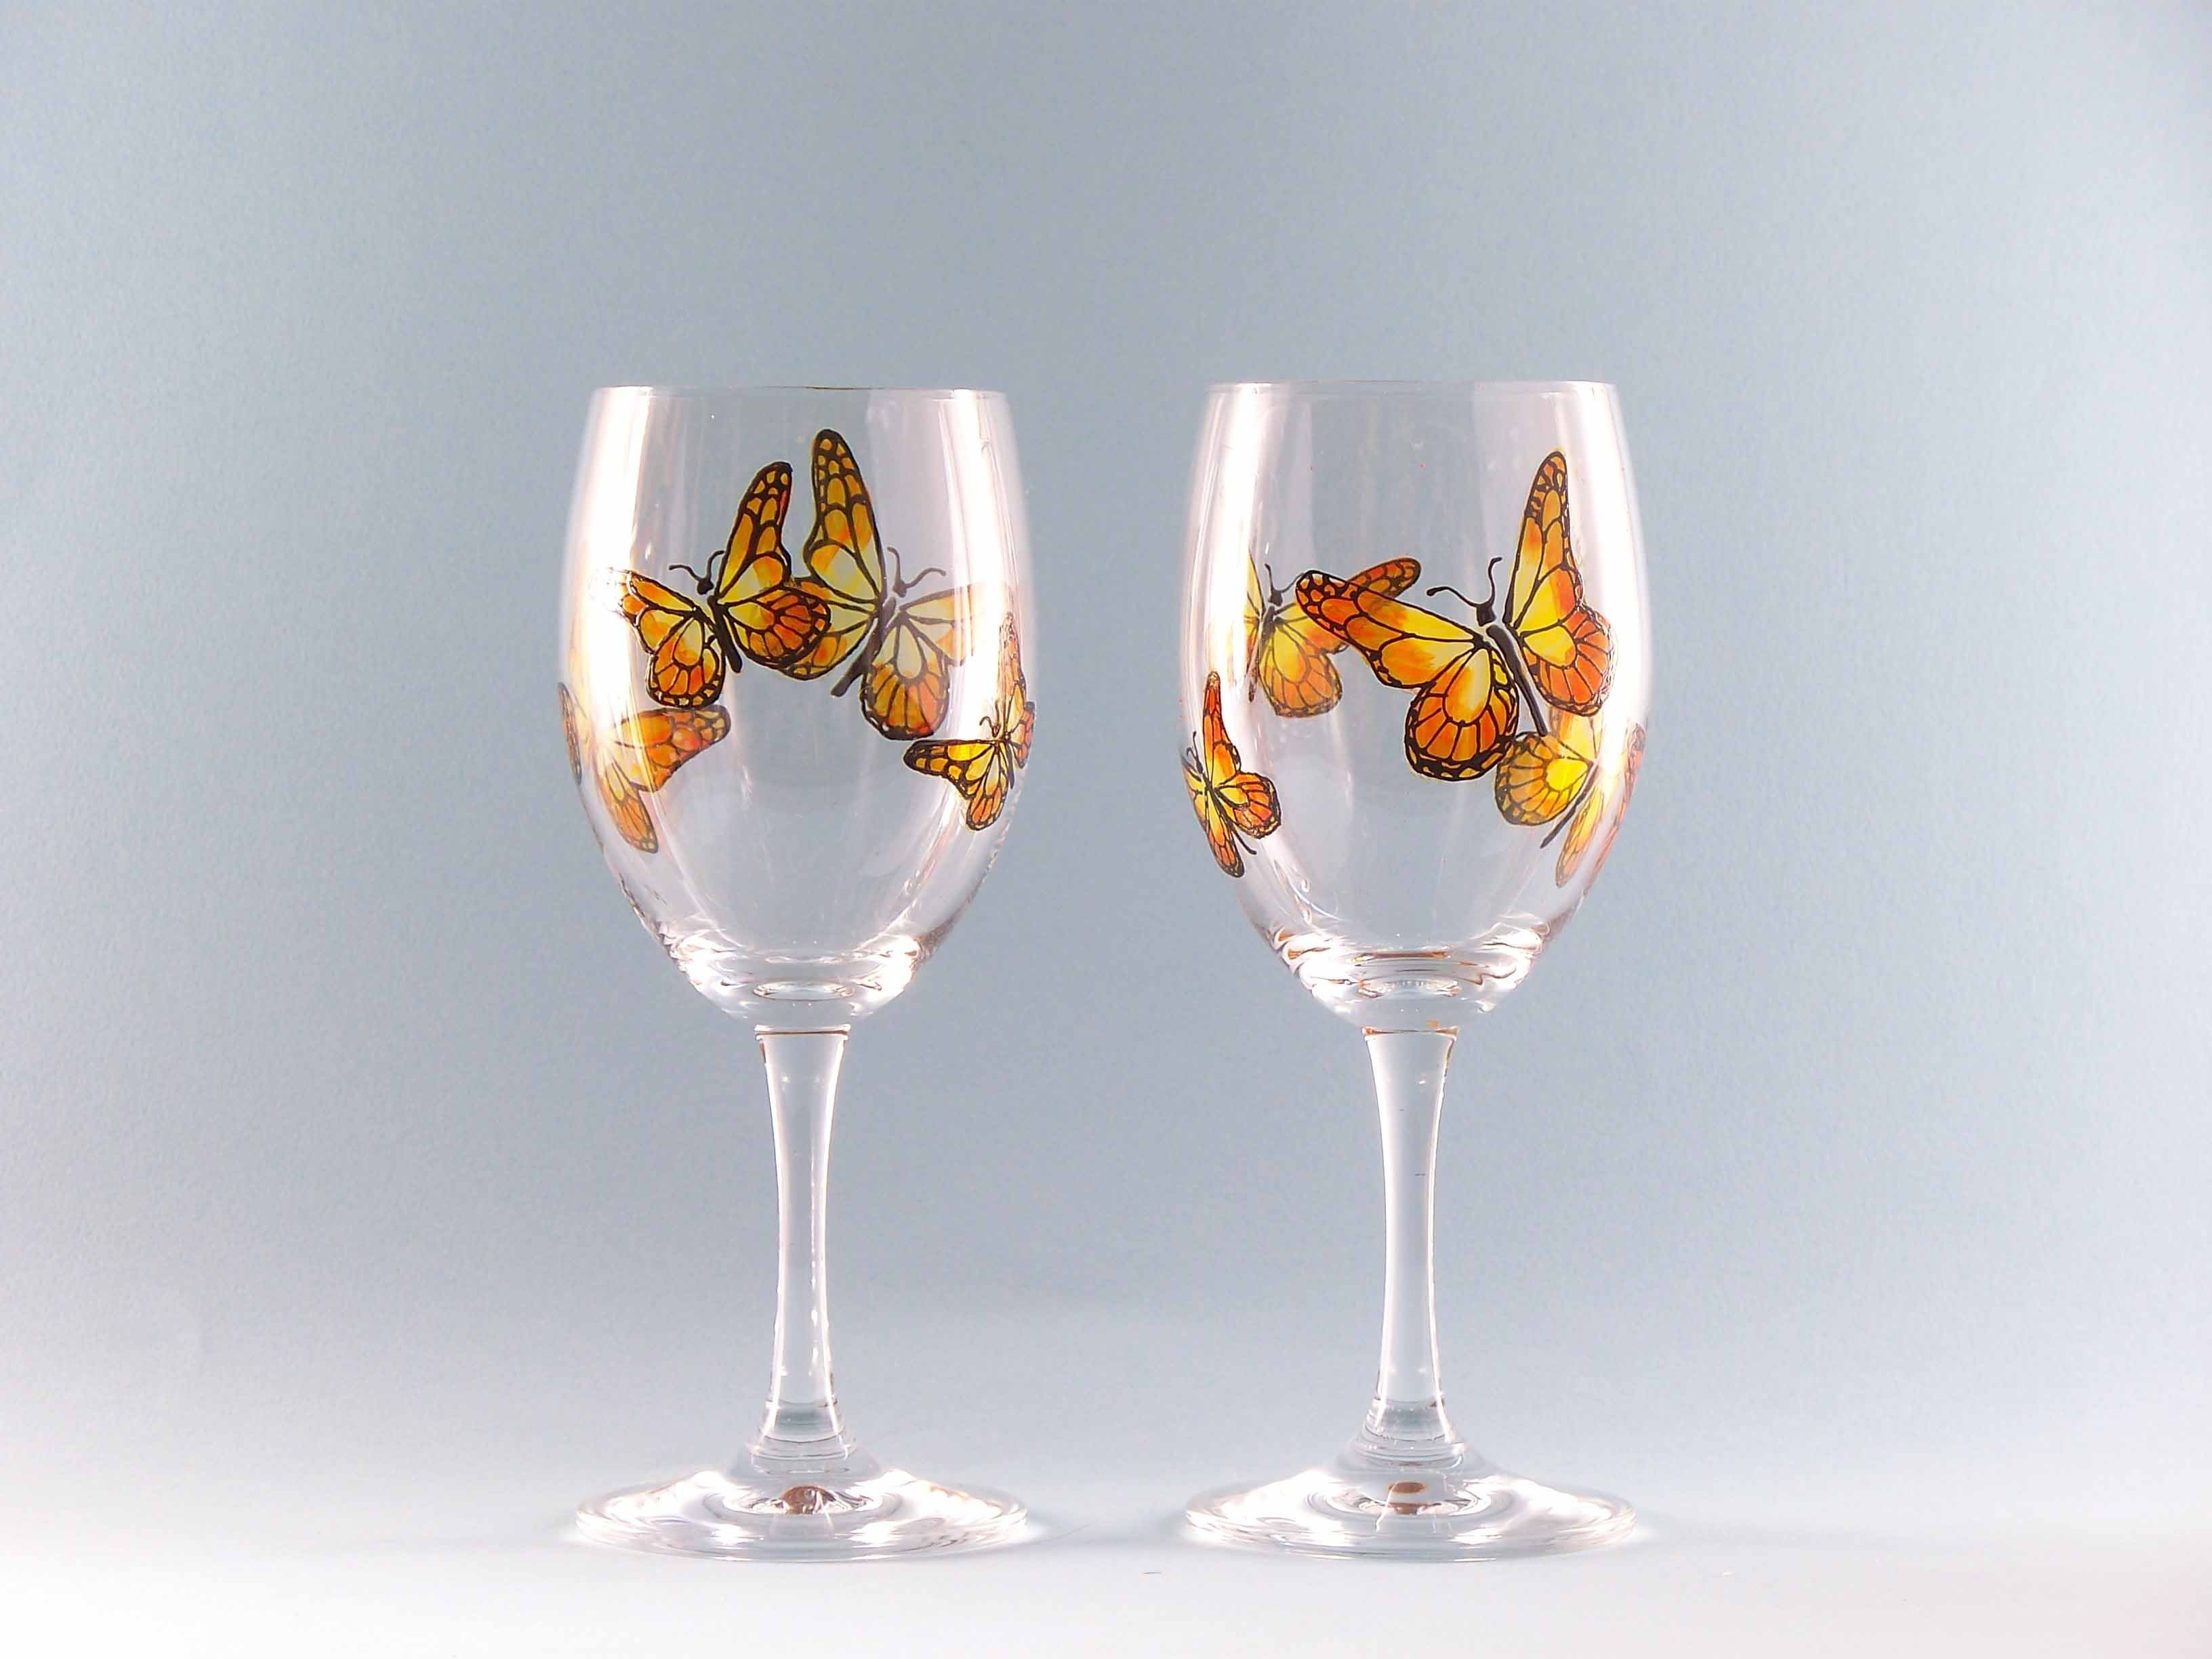 10 Cute Ideas For Painting Wine Glasses butterfly painted wine glasses ideas beautiful glass painting 2021